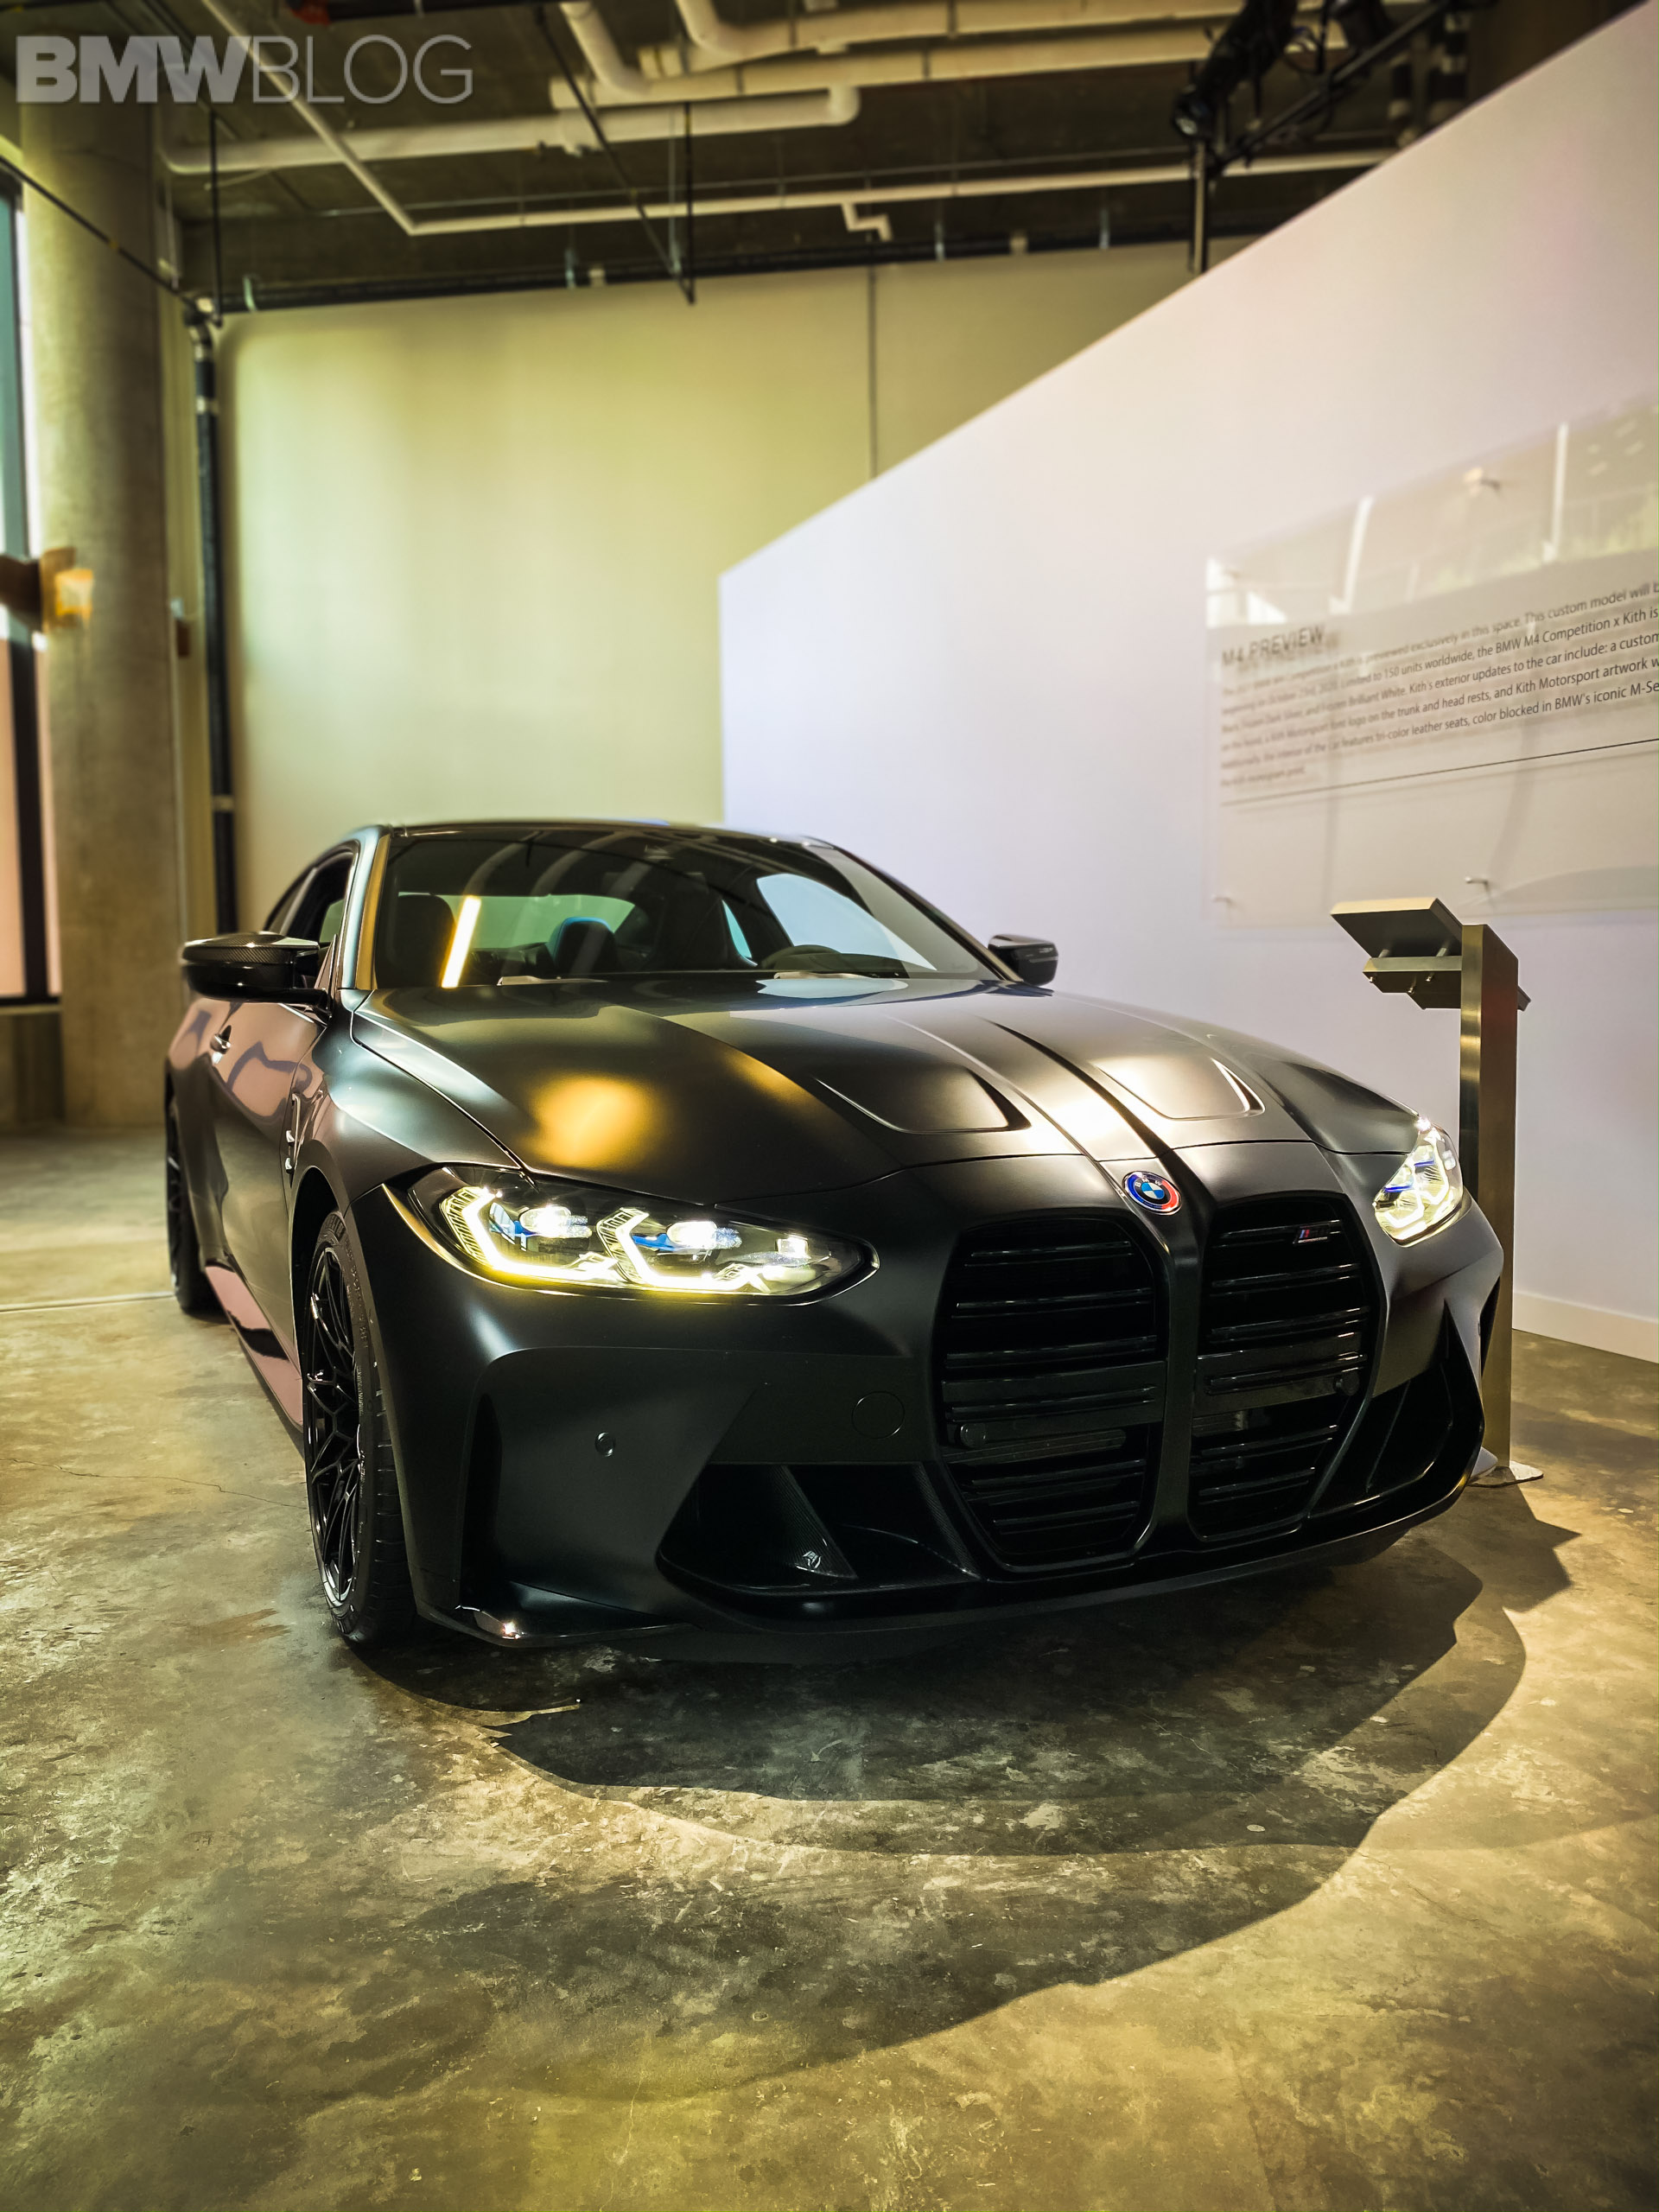 2021 G82 Bmw M4 By Kith Real Life Photos Videos Of The Frozen Black Color